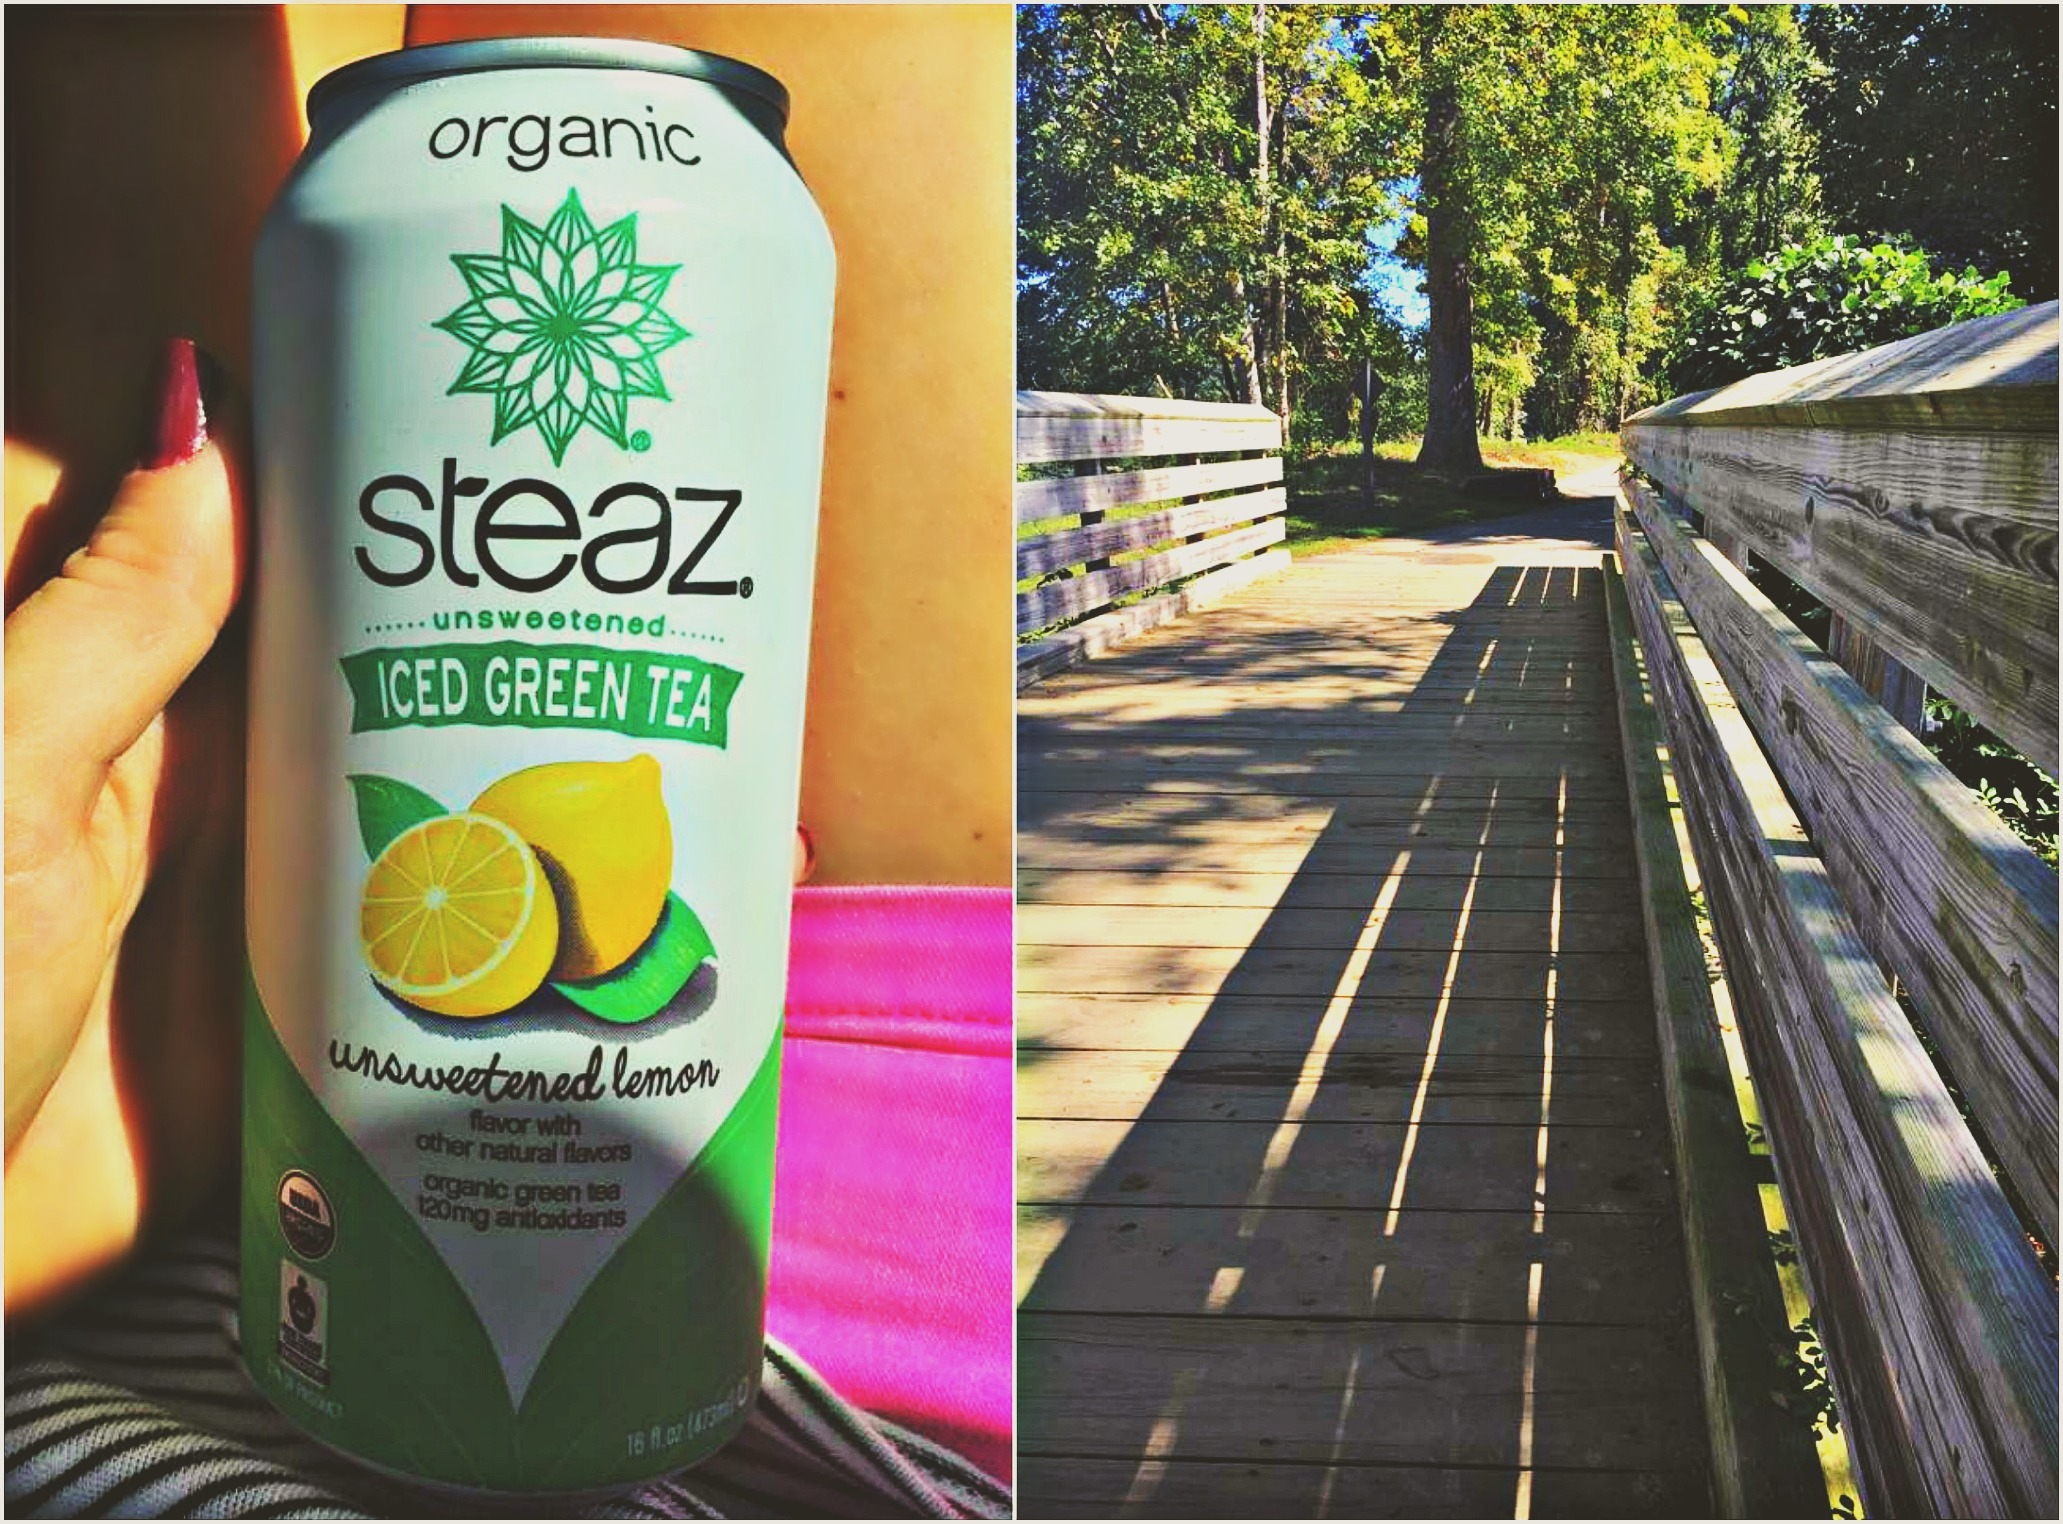 organic steaz iced green tea